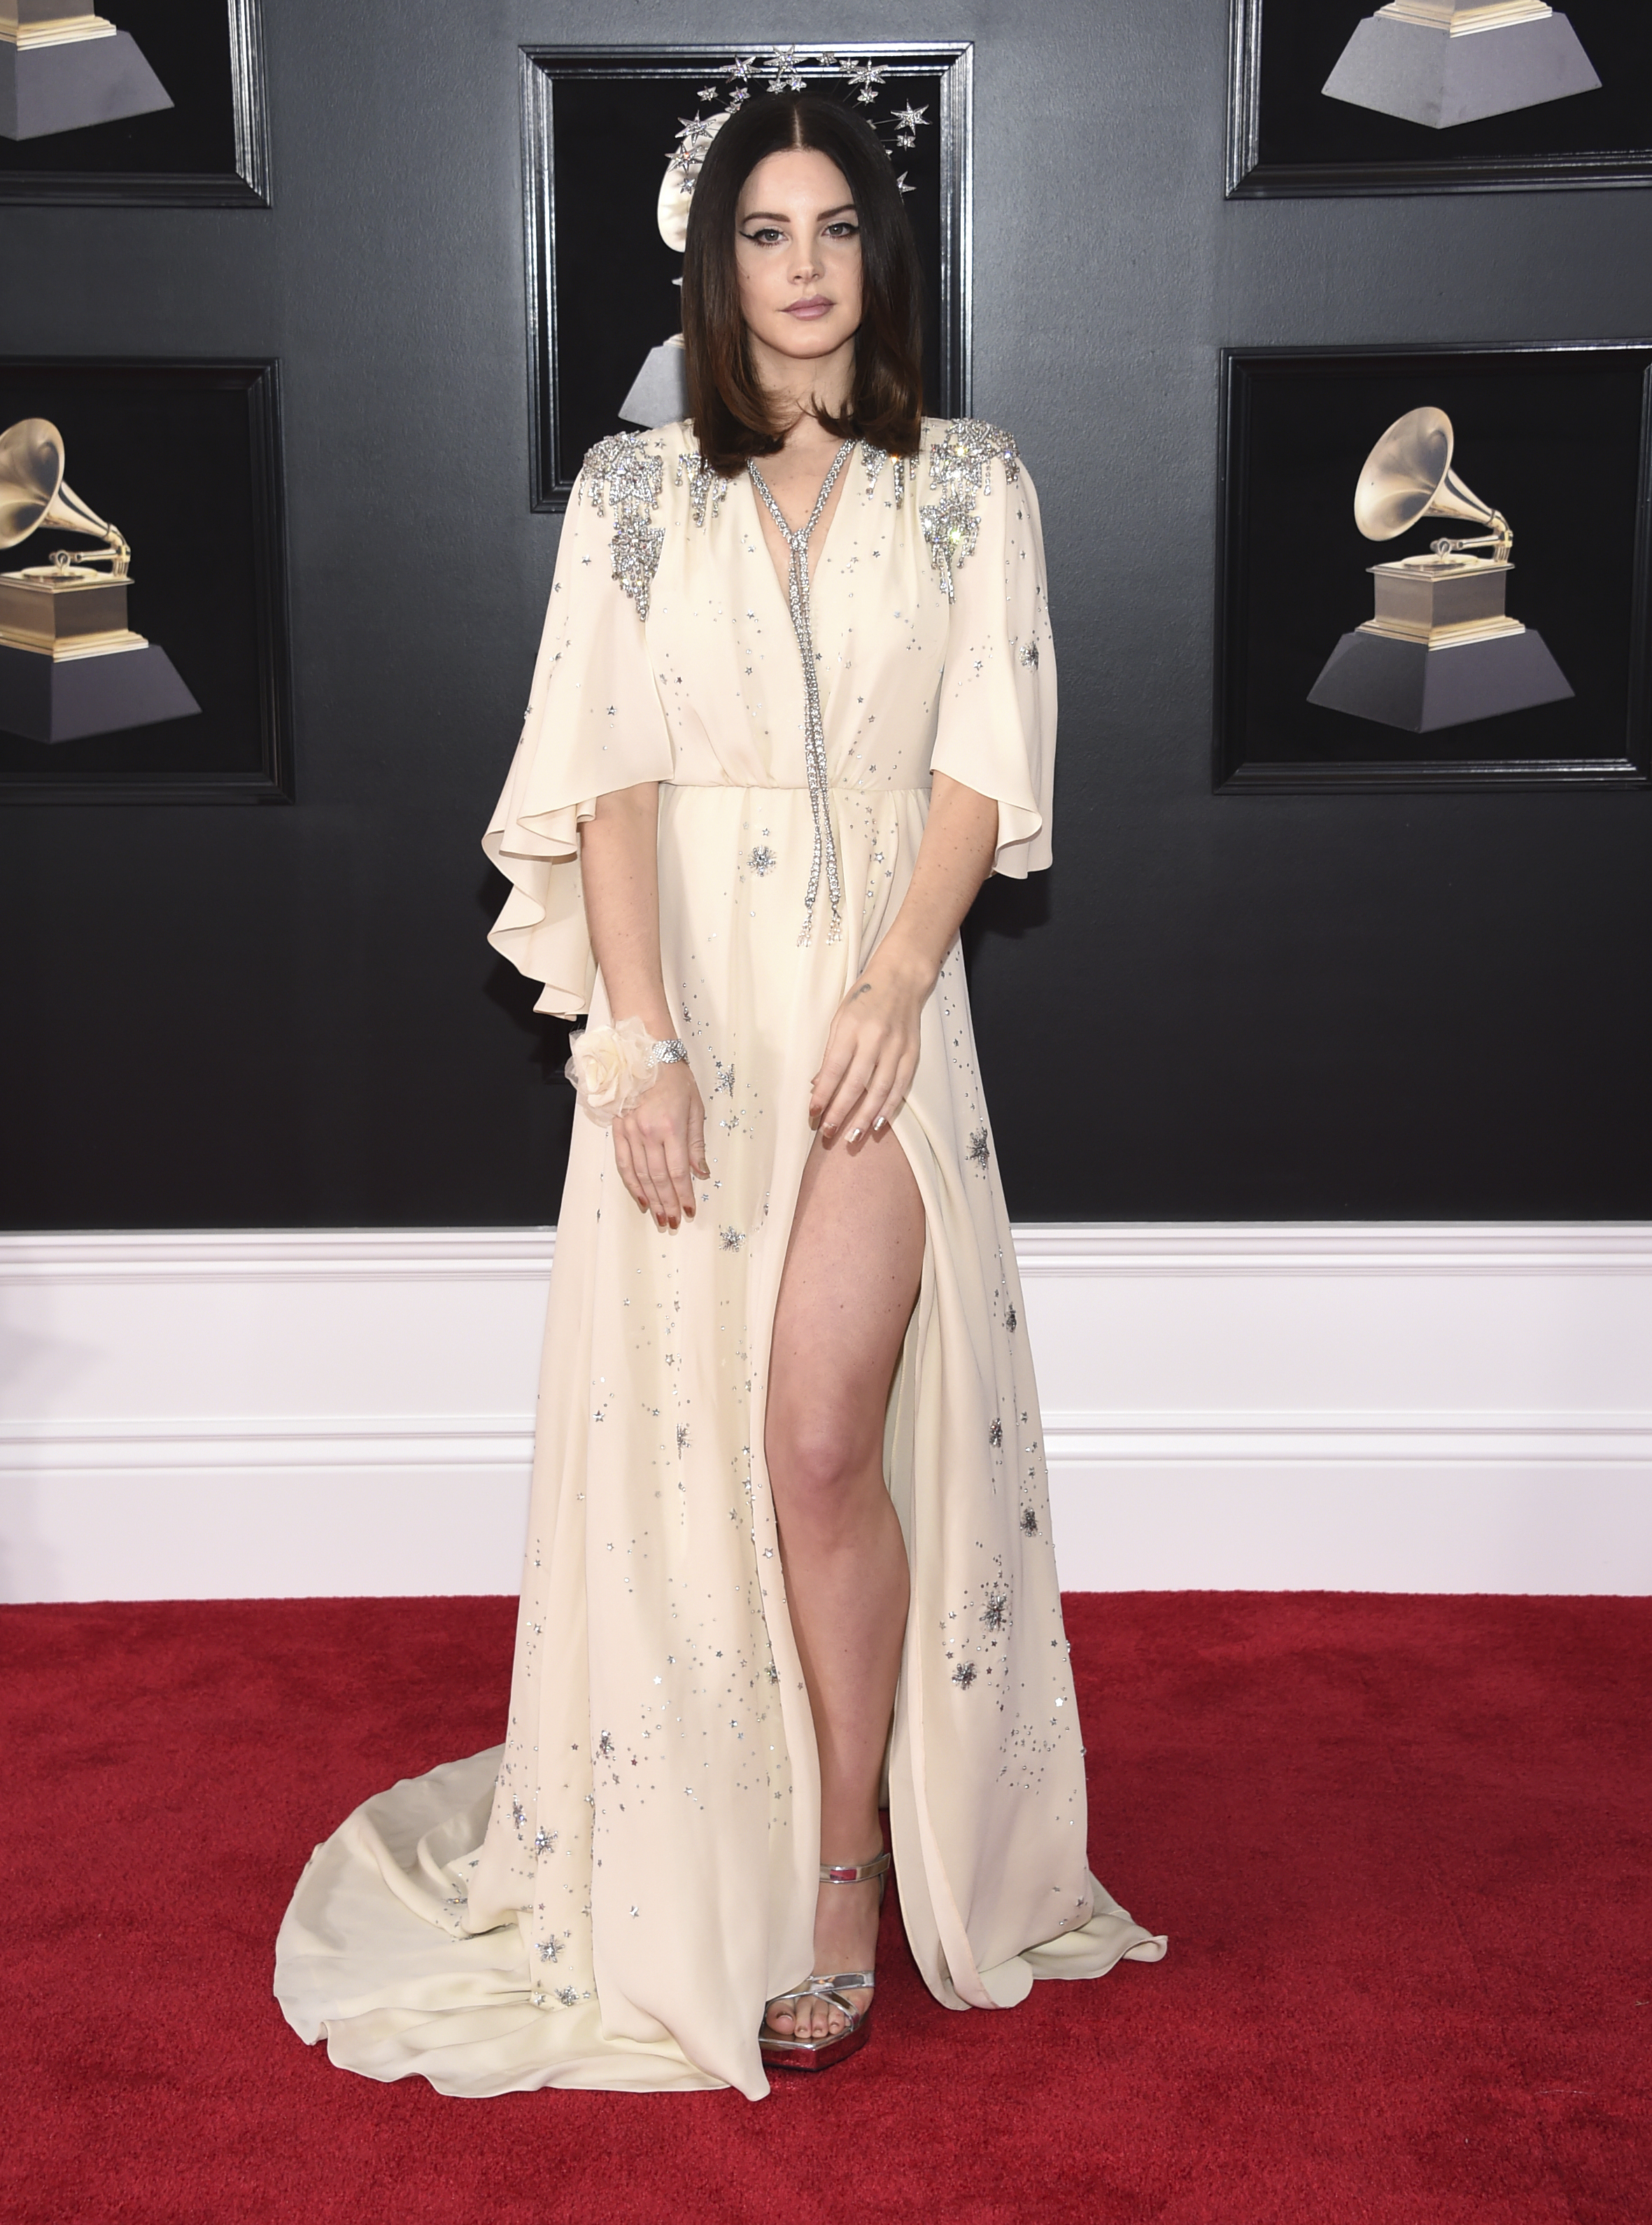 <div class='meta'><div class='origin-logo' data-origin='AP'></div><span class='caption-text' data-credit='Evan Agostini/Invision/AP'>Lana Del Rey arrives at the 60th annual Grammy Awards at Madison Square Garden on Sunday, Jan. 28, 2018, in New York.</span></div>